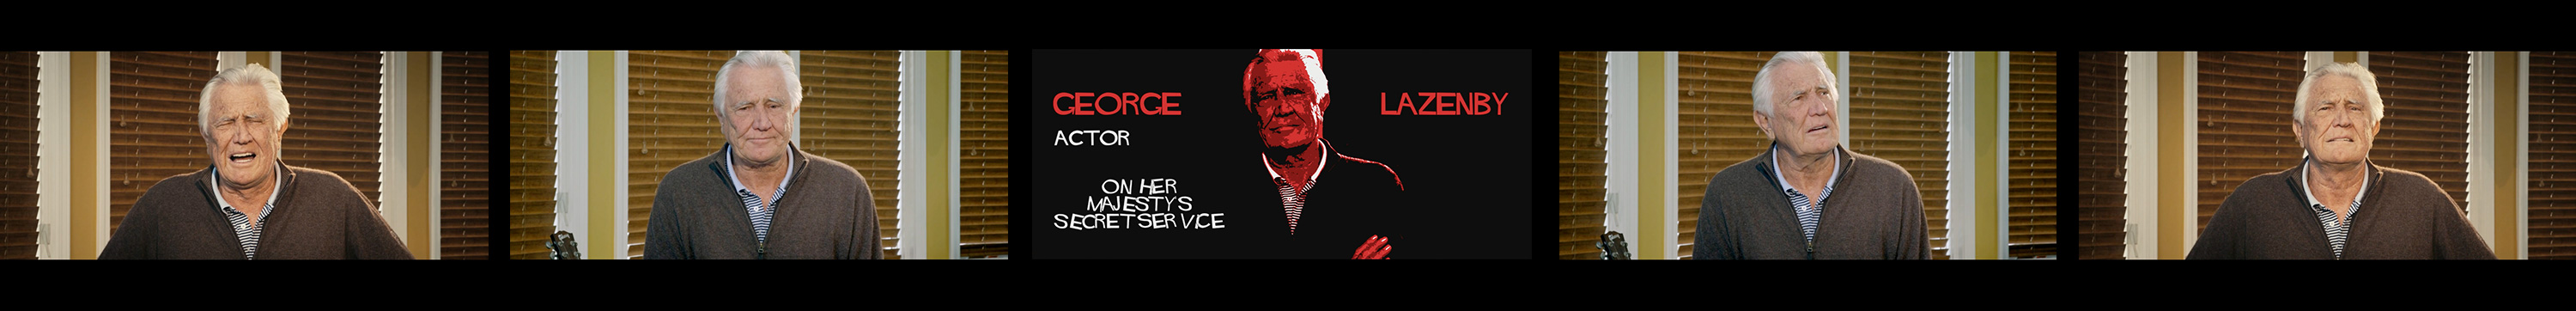 And The Winner Isn't Documentary George Lazenby